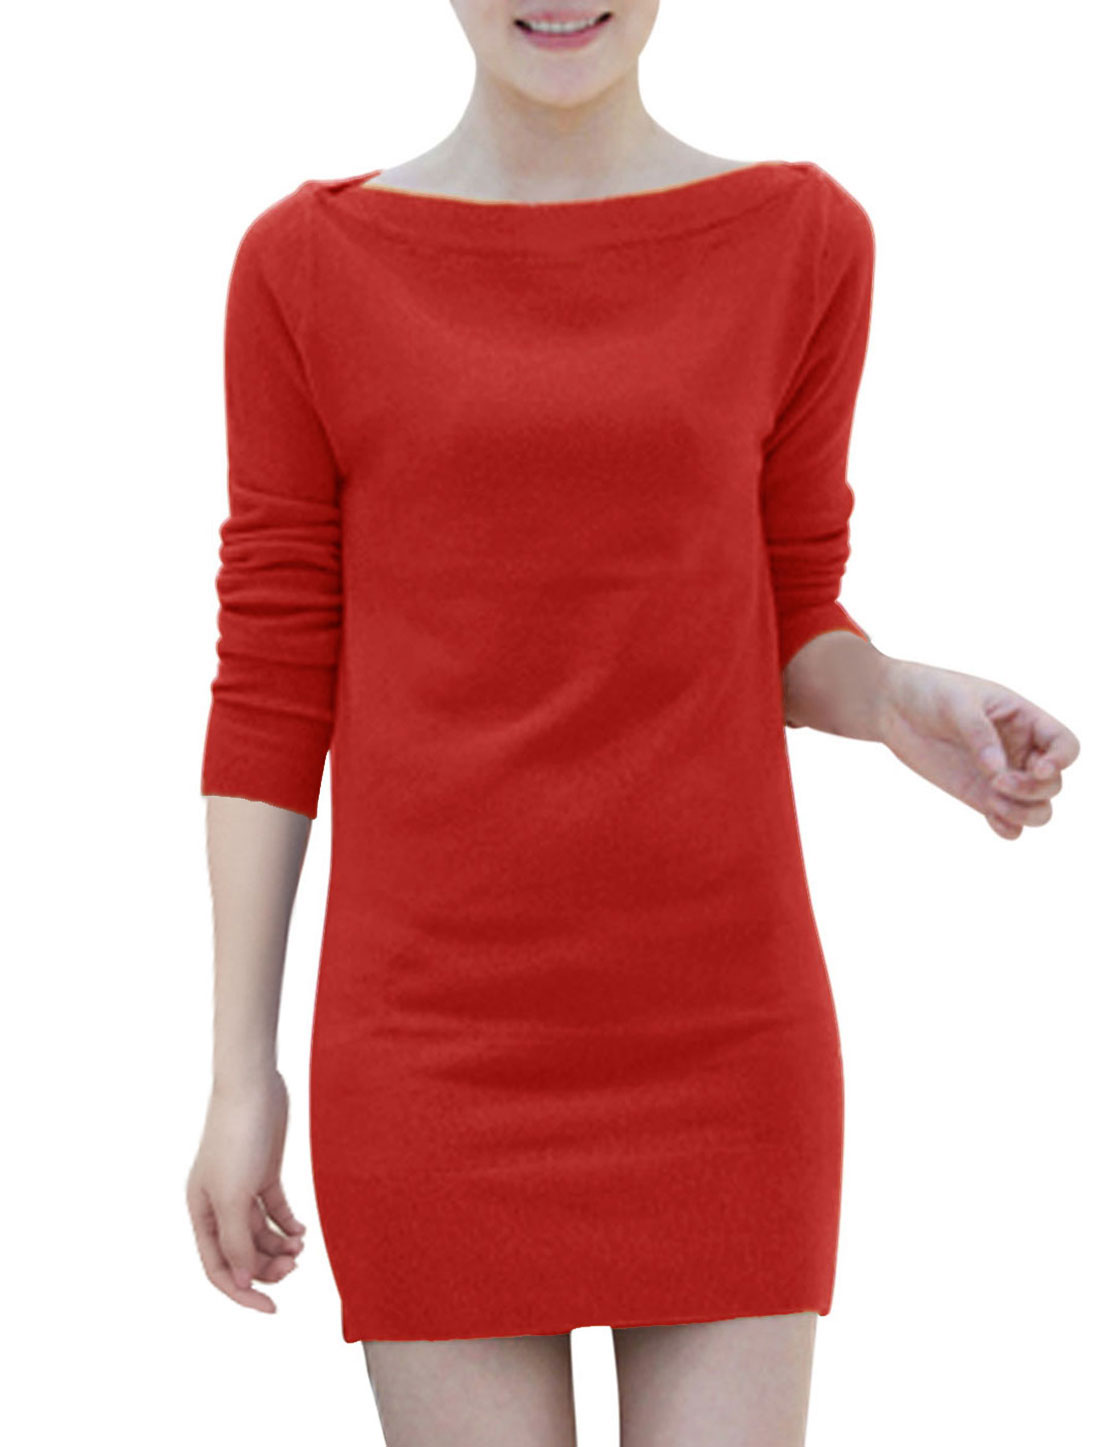 Two Ways Wearing Long Sleeves Stylish Knit Sheath Dress for Women Red S